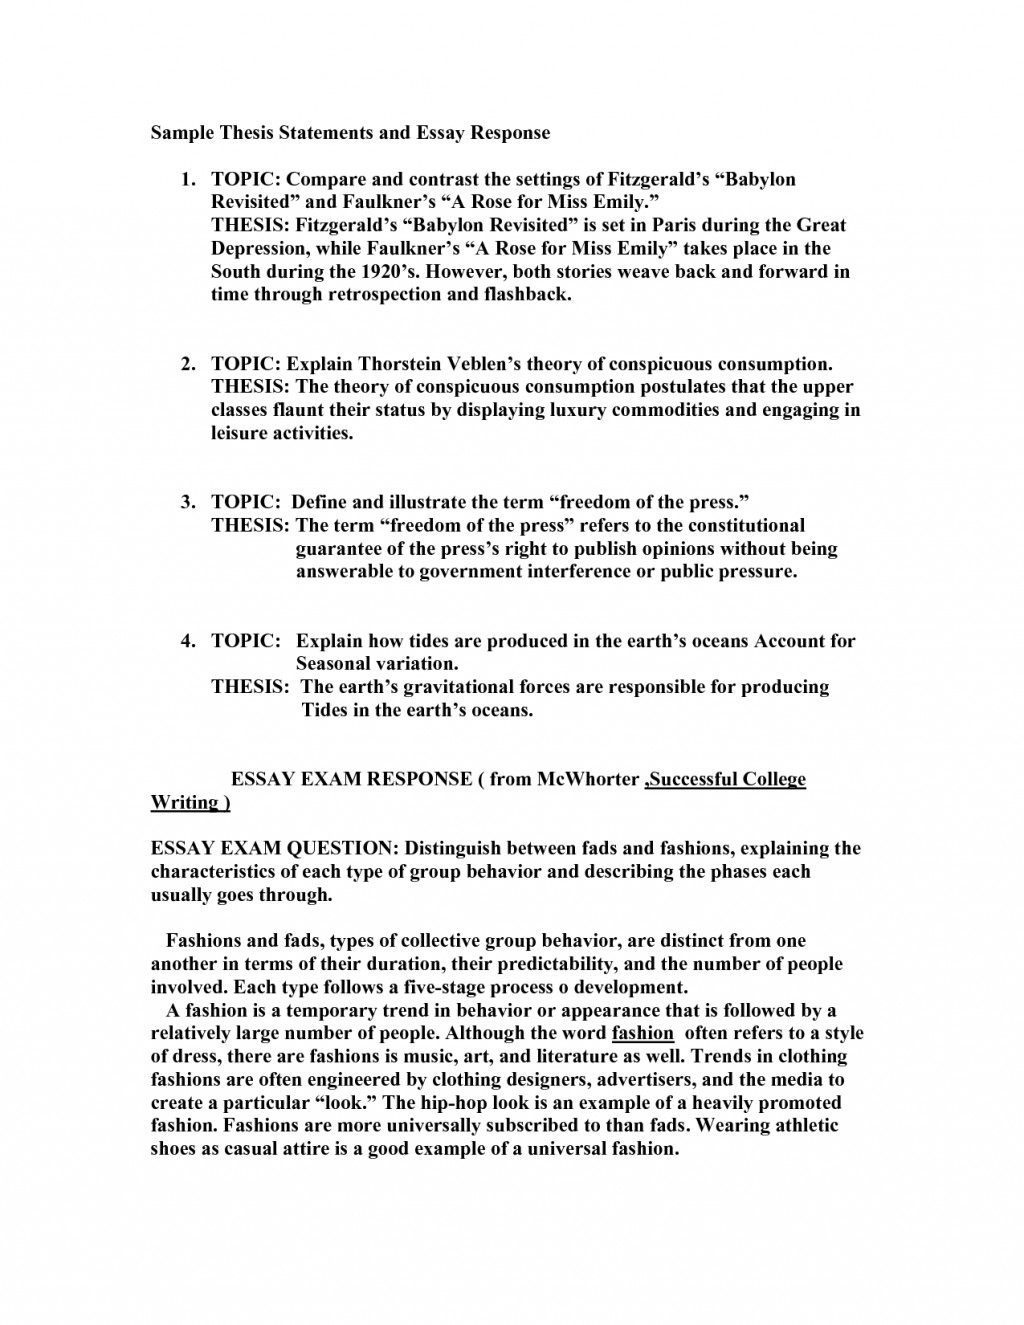 014 Essay Example 6na1pphnb7 Thesis Statement Examples For Impressive Essays Analysis Response Papers About Yourself Large